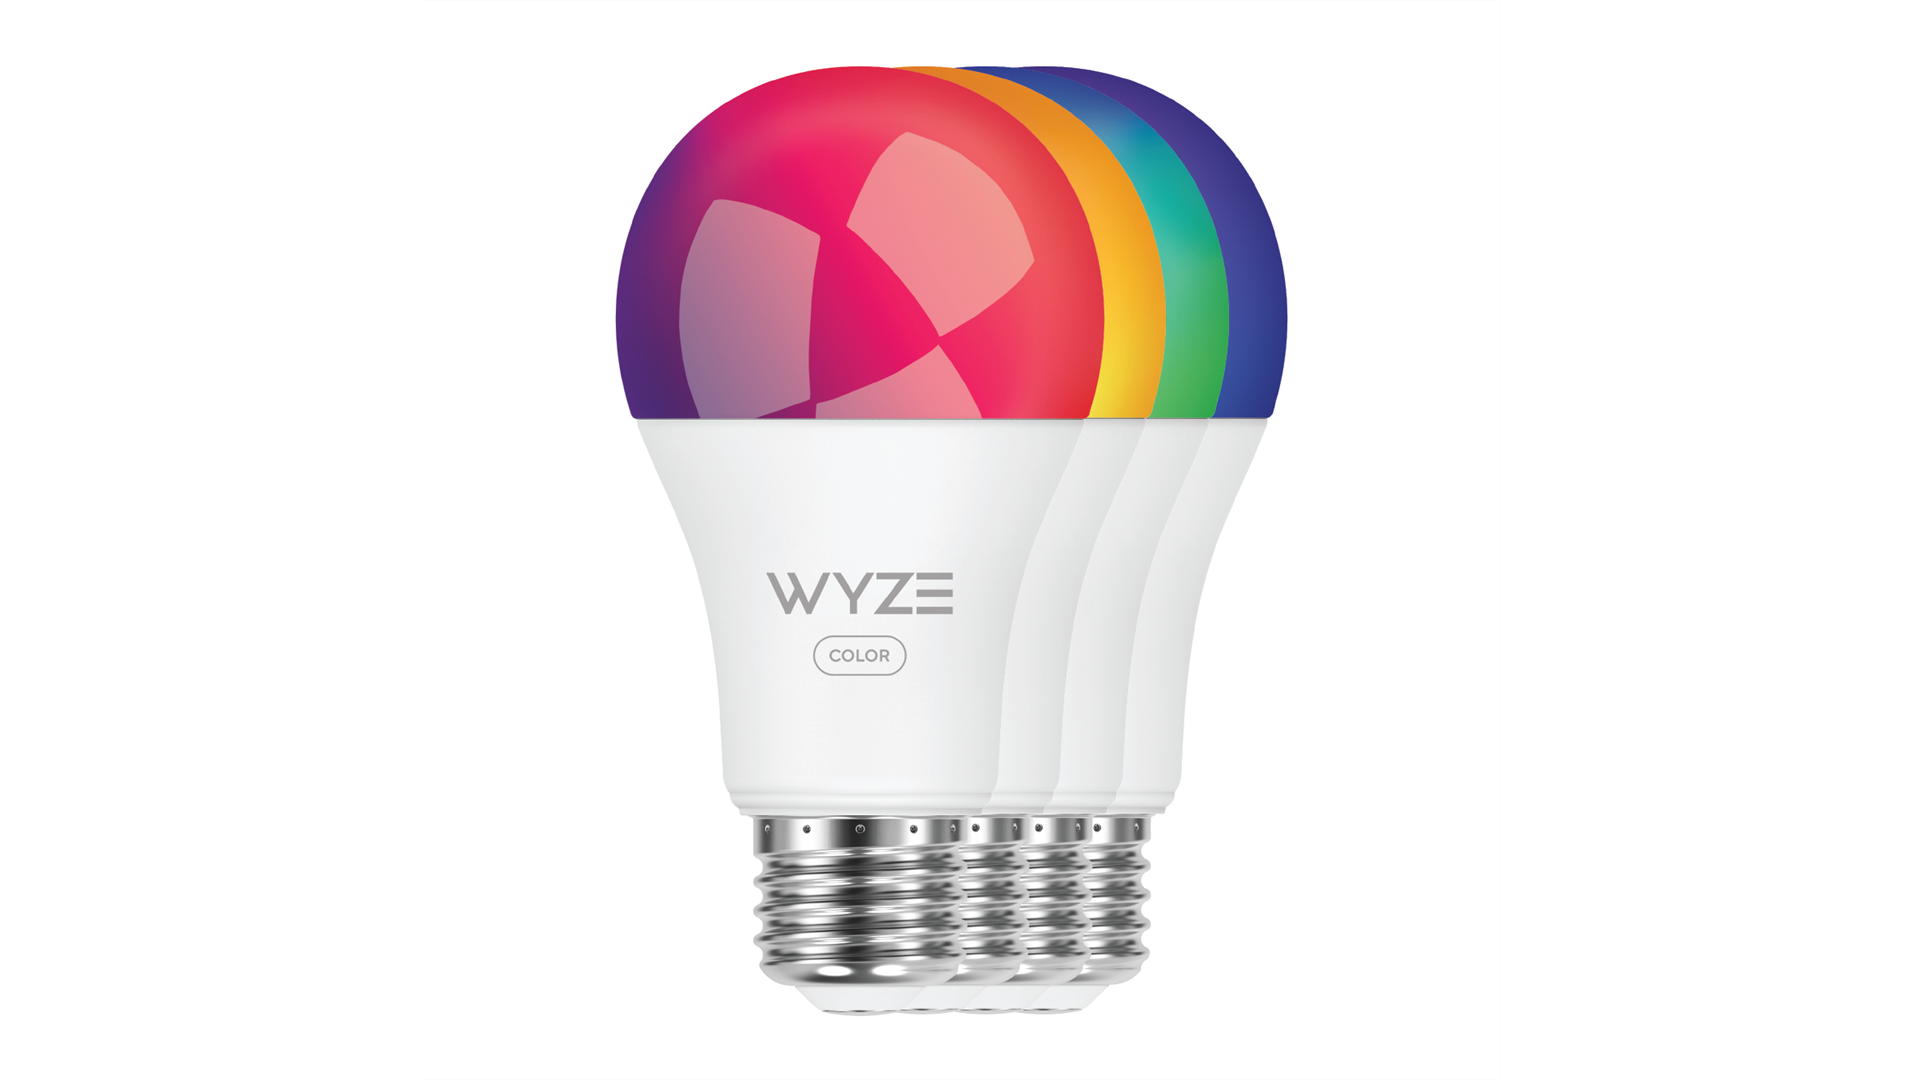 Pre-Order Wyze's New $35 Color Smart Bulb 4-Pack ($165 Less Than Philips Hue)